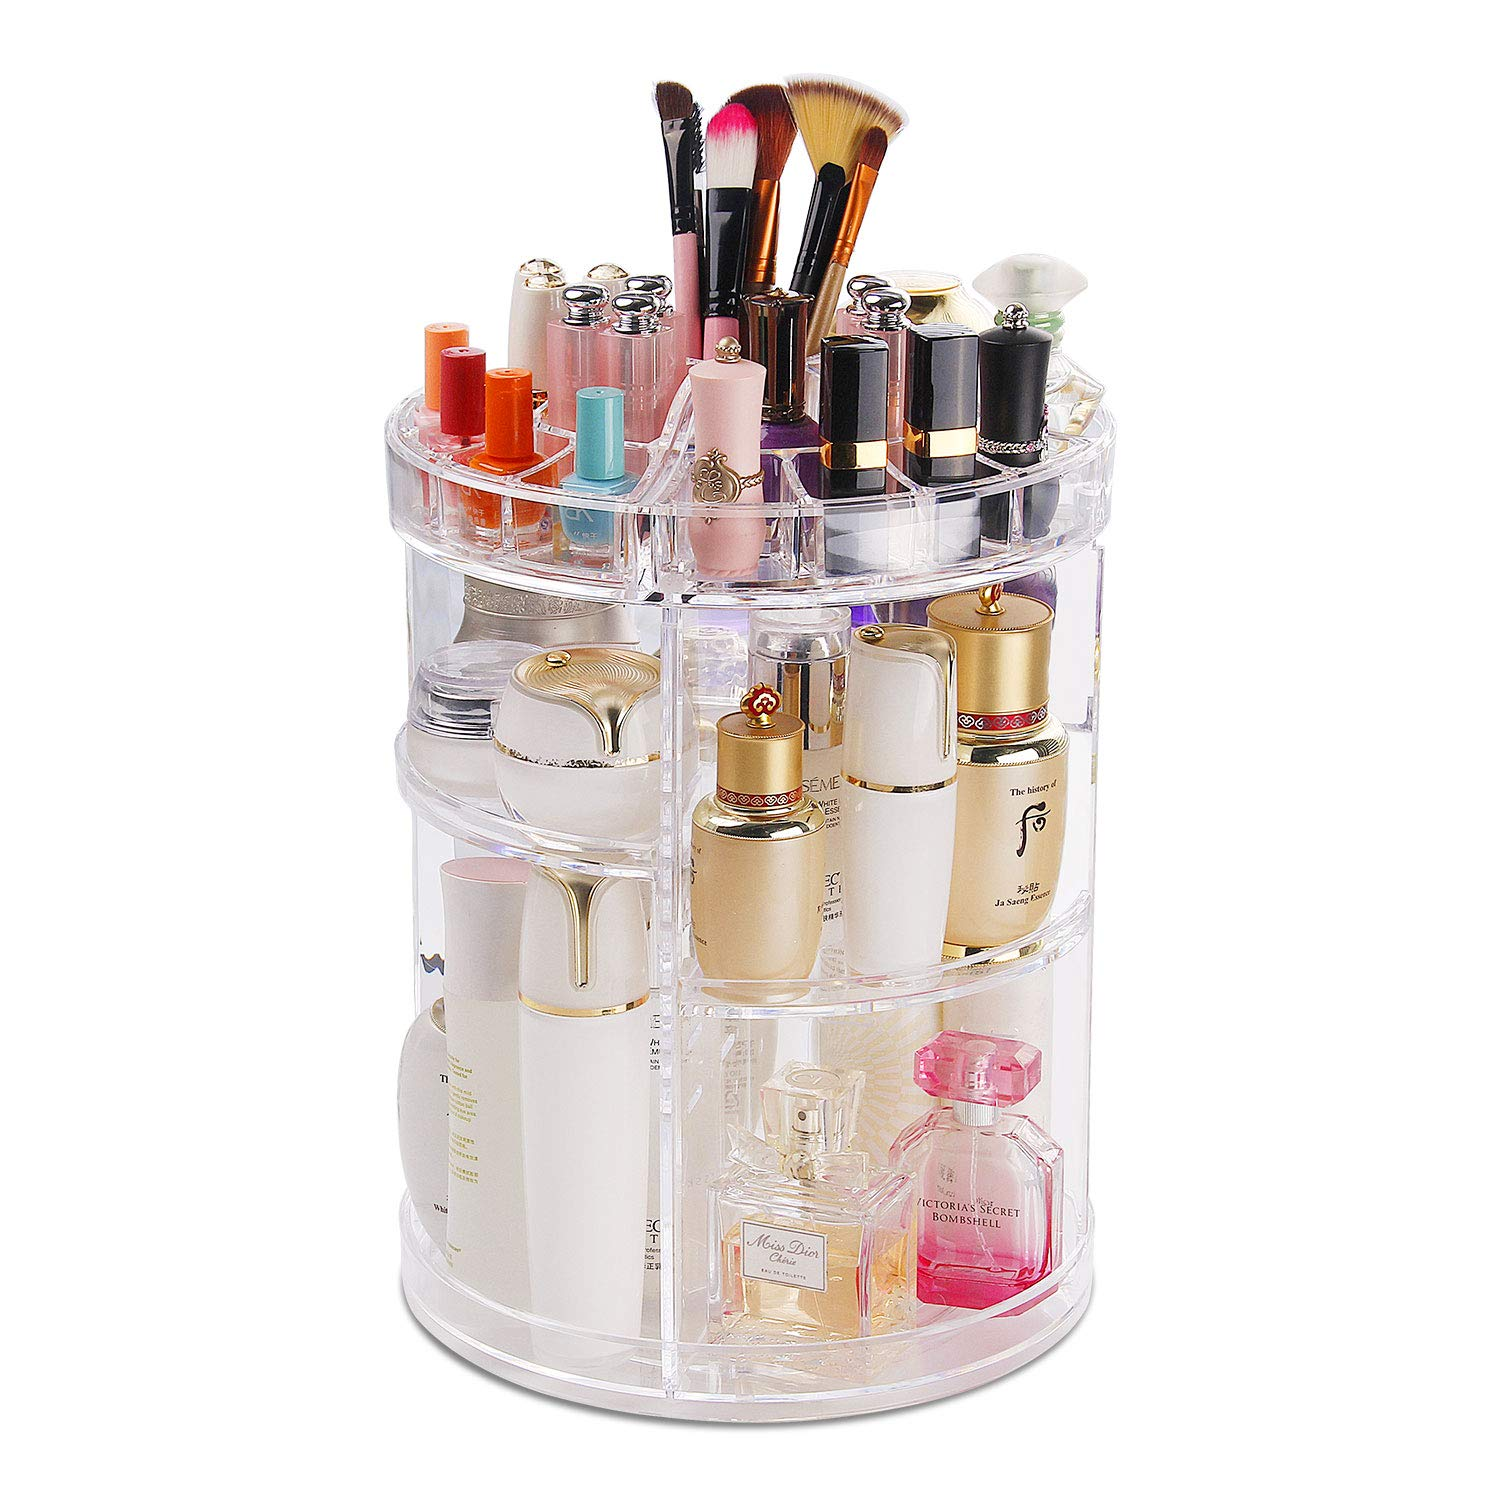 Makeup Organizer,360 Degree Rotating Adjustable Acrylic Cosmetic Storage Display Case with 6 Layers Large Capacity, Fits Creams, Makeup Brushes, Lipsticks and More, Clear Transparent